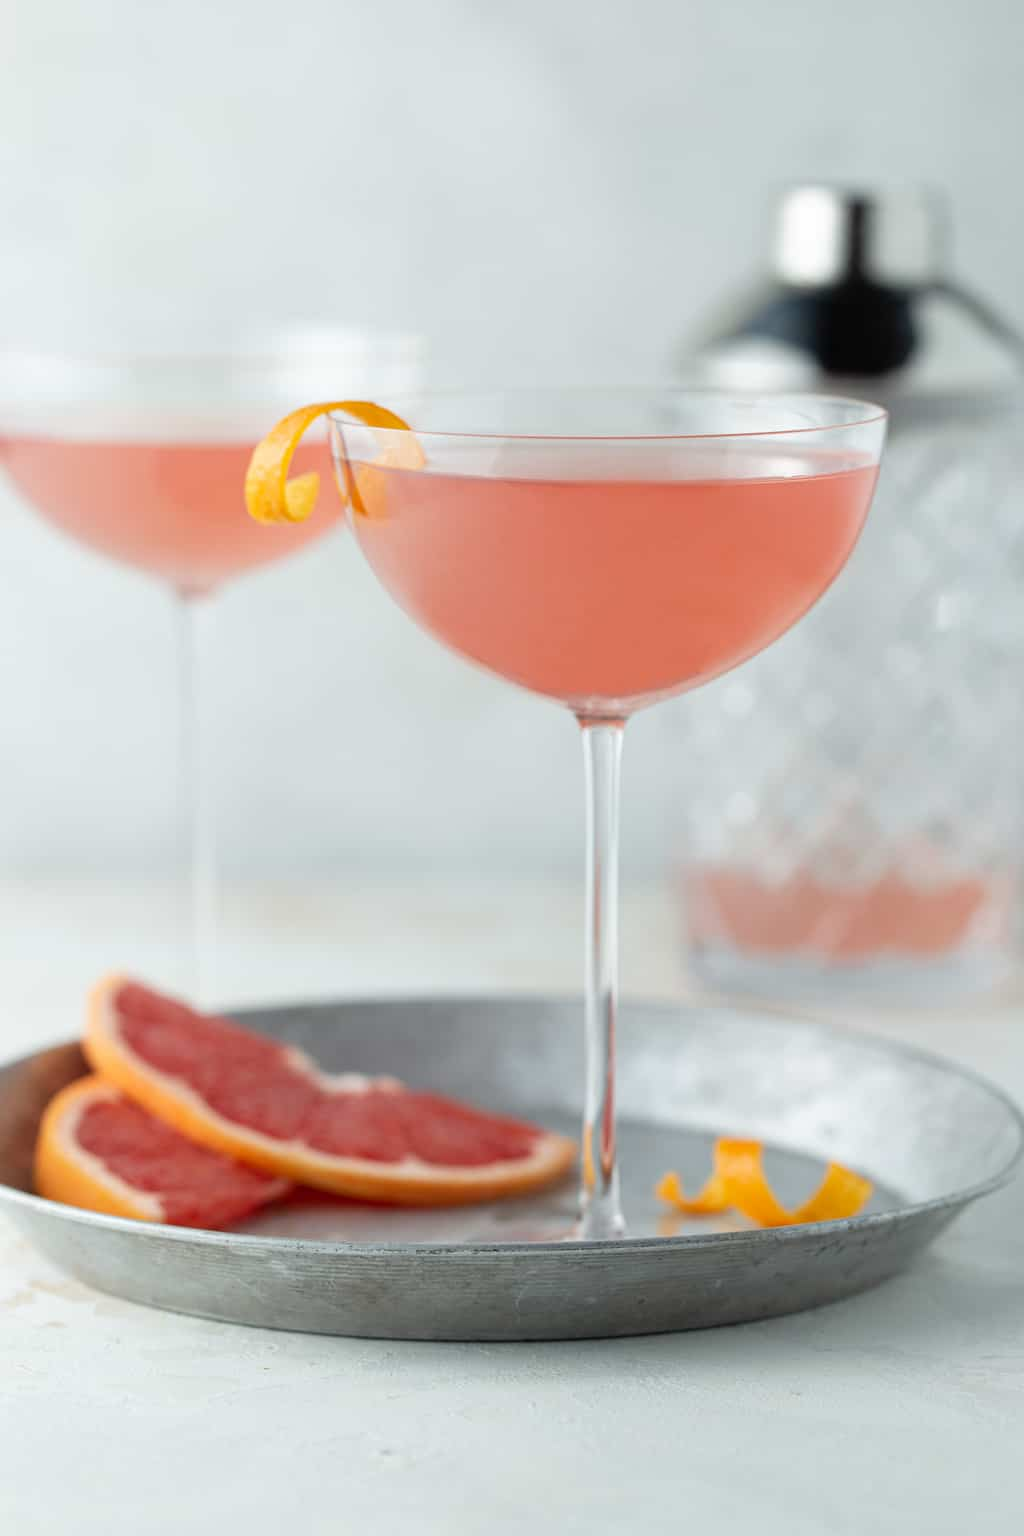 2 pink martinis with a shaker in the background on a white surface.